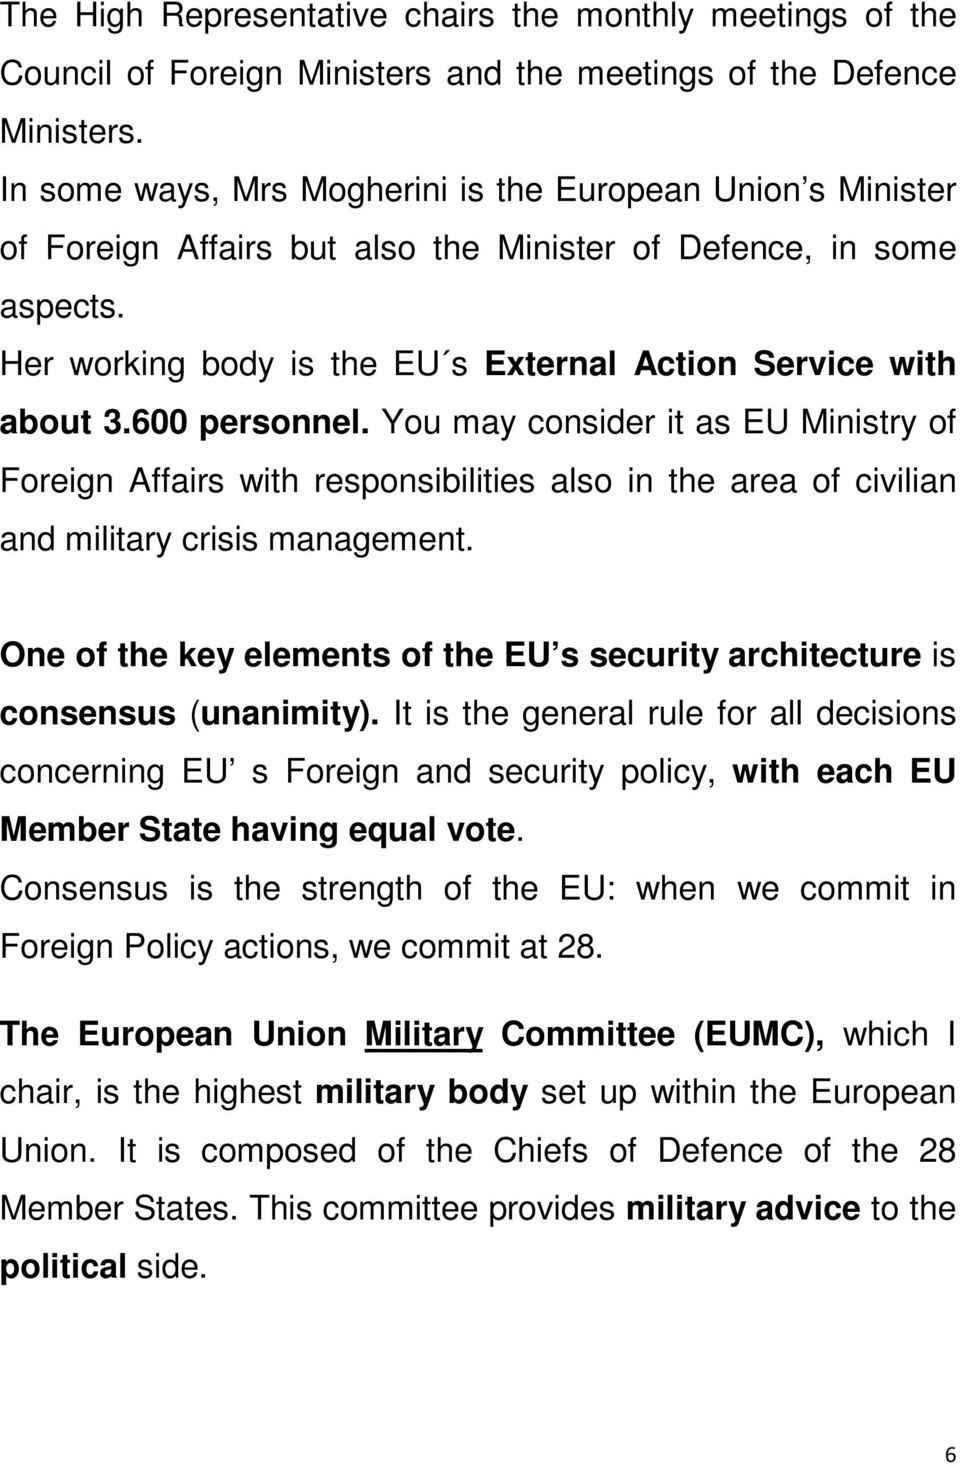 600 personnel. You may consider it as EU Ministry of Foreign Affairs with responsibilities also in the area of civilian and military crisis management.